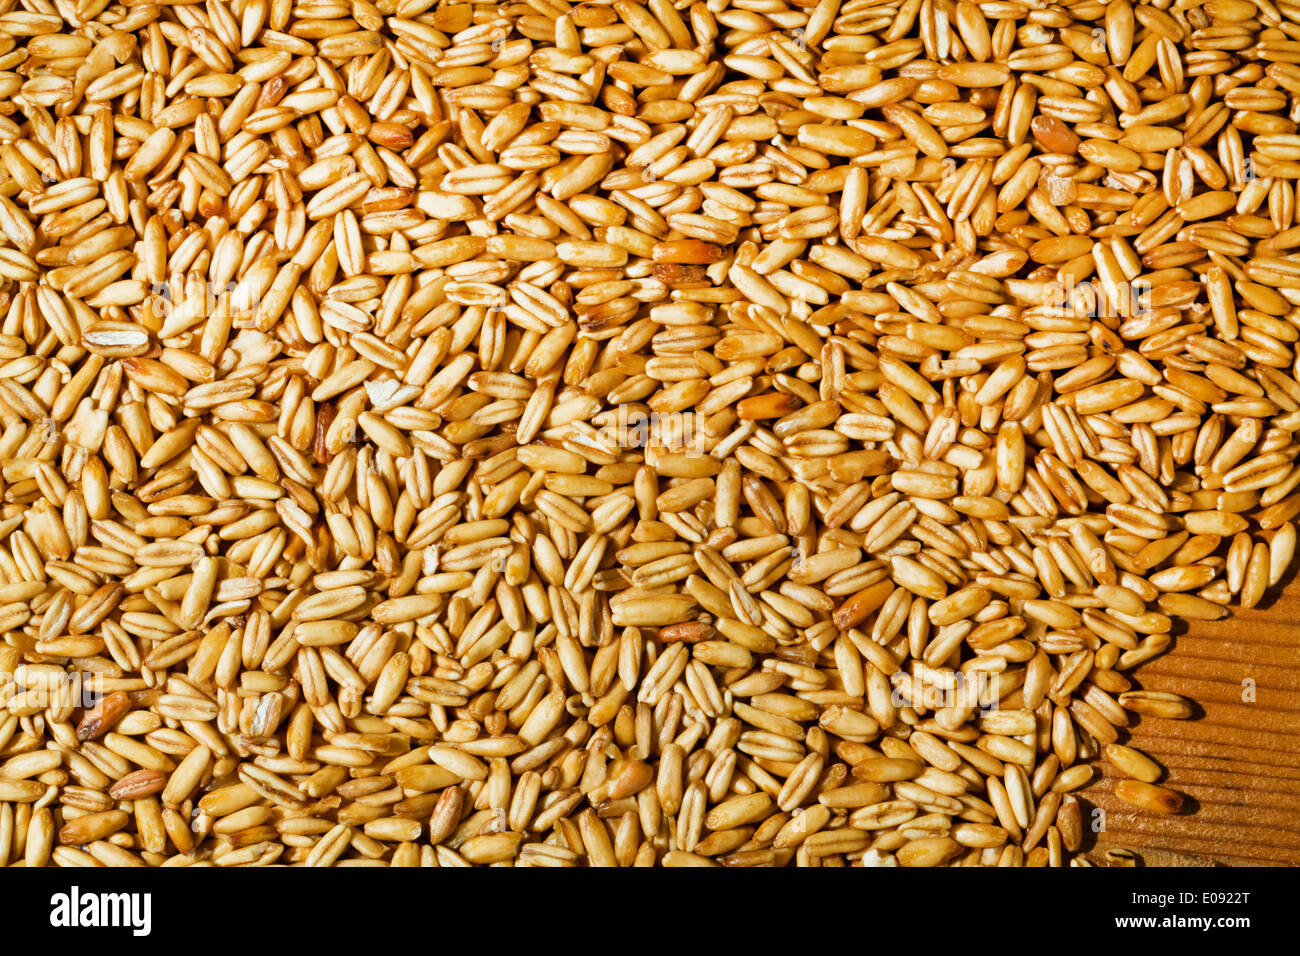 Hafer Preis Grain Punch Of The Oat Yields Fue Grain In The Agriculture